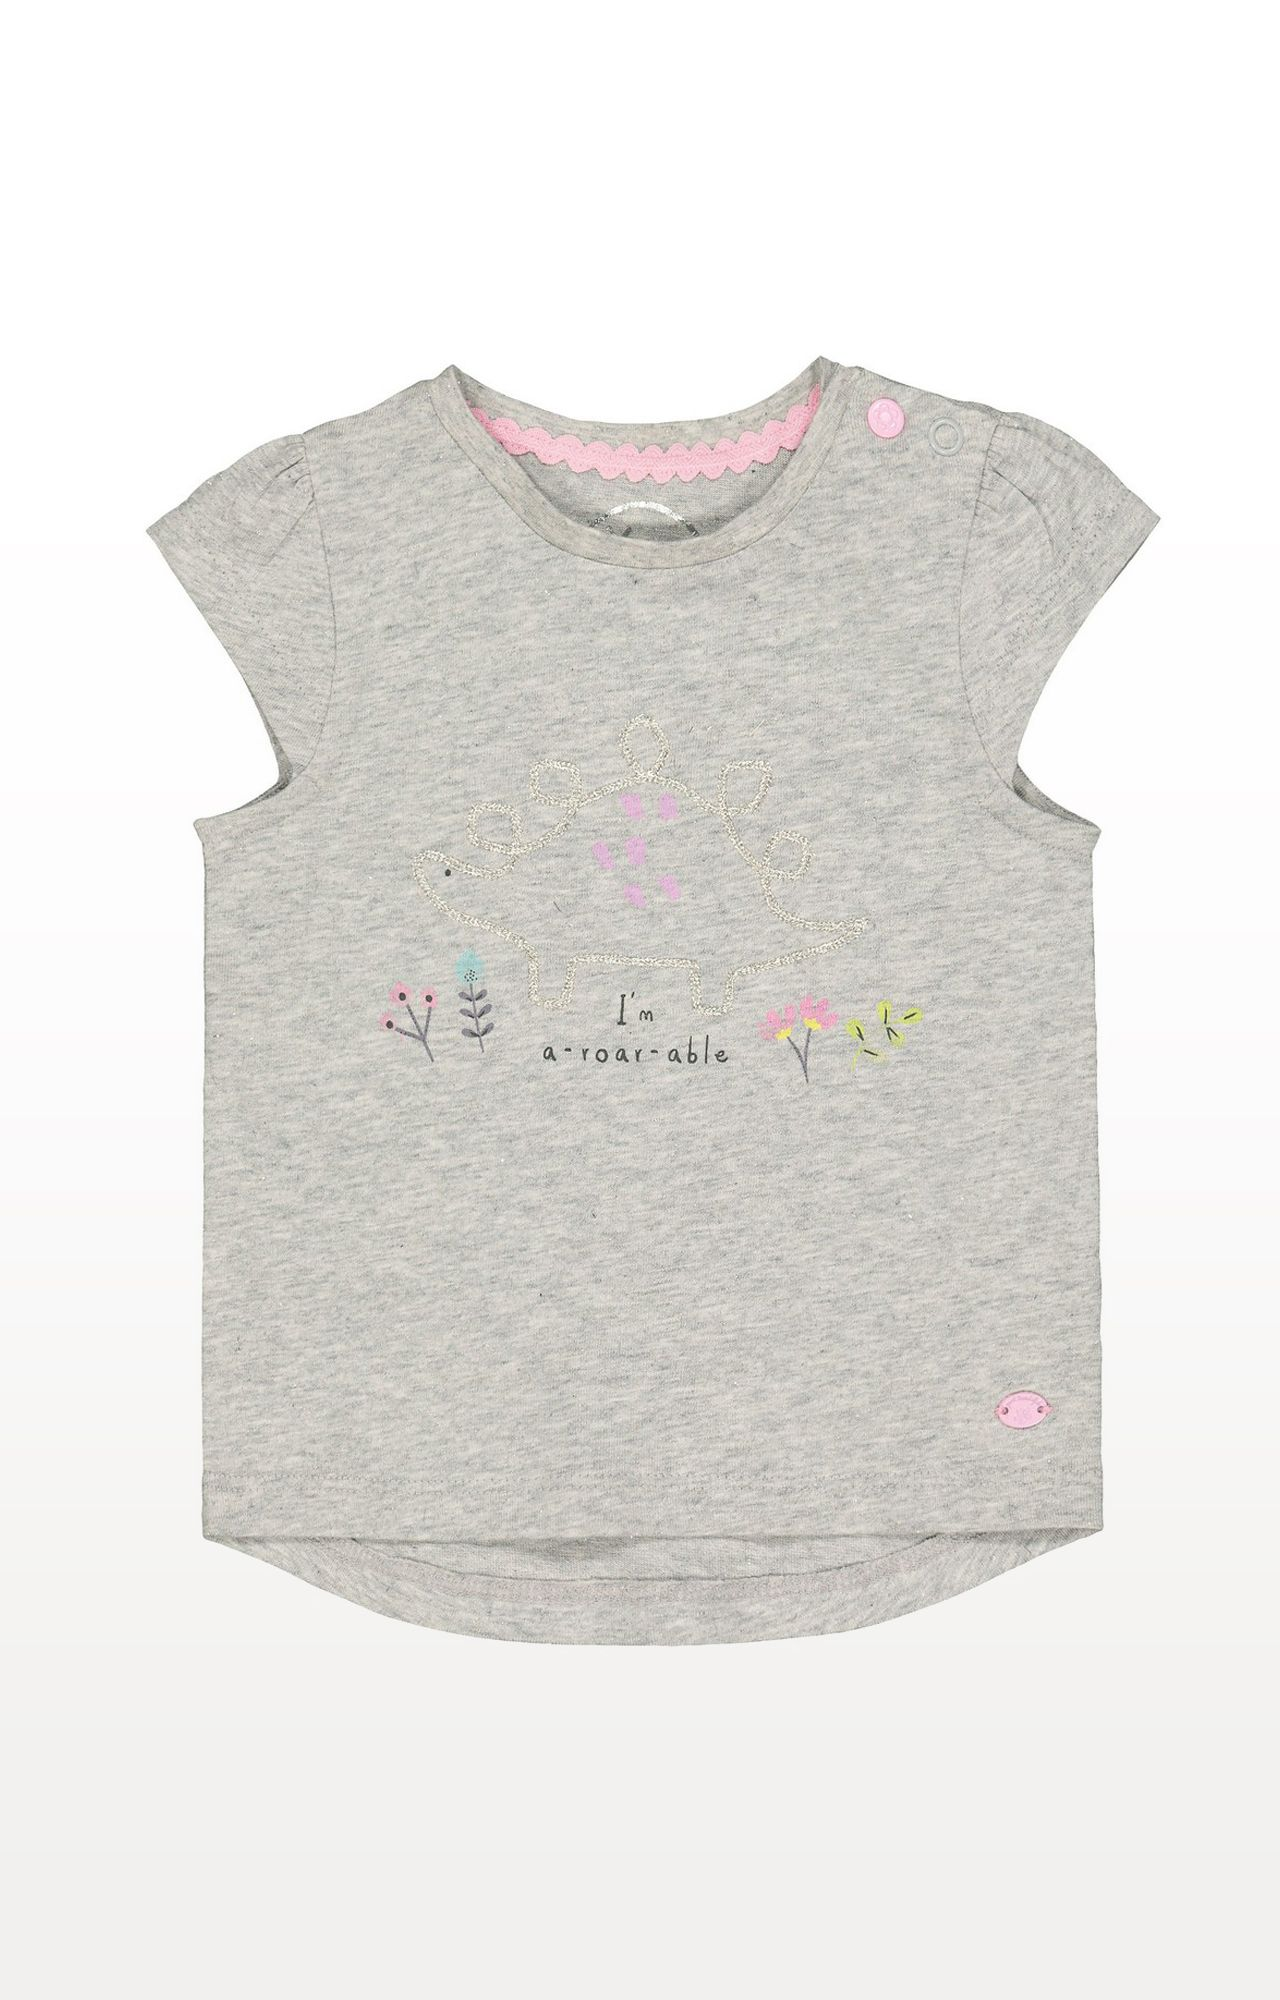 Mothercare | Grey Printed A-Roar-Able T-Shirt